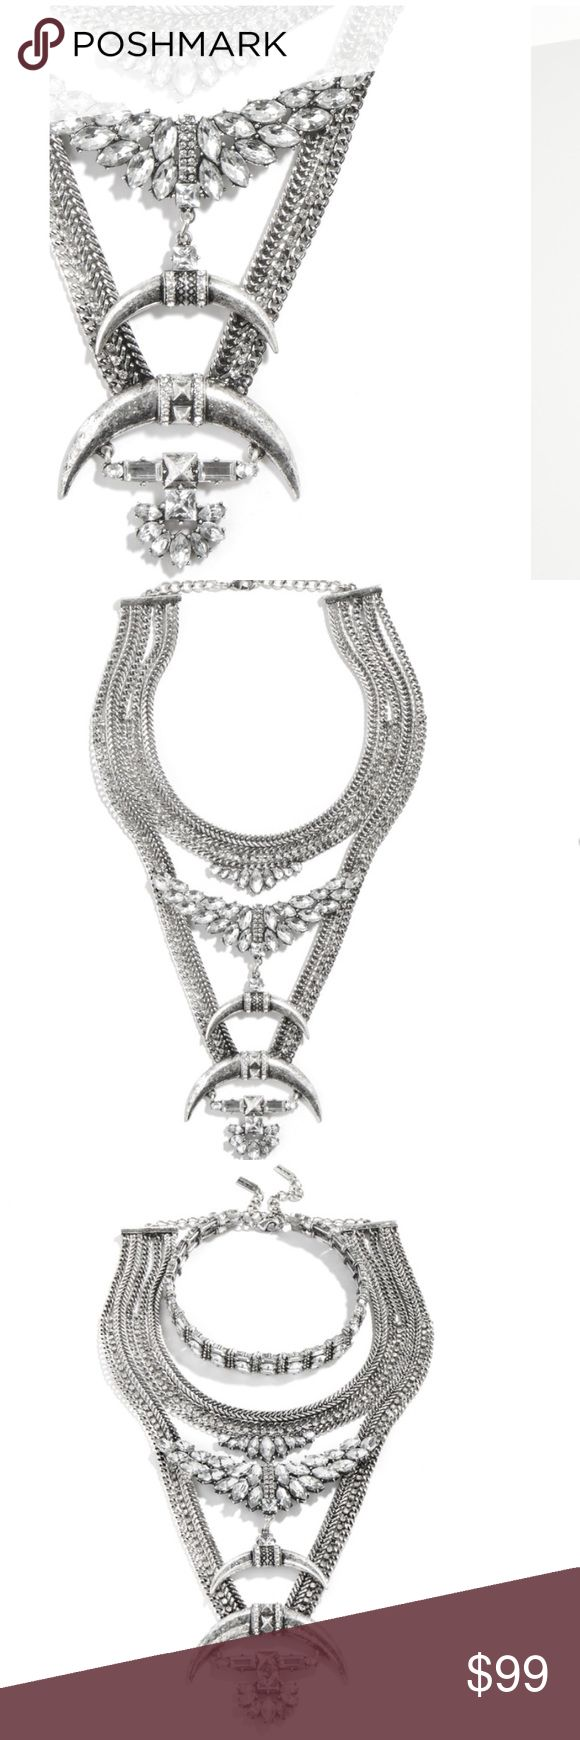 MADELHARI WARRIOR BIB Crescent pendants, glossy crystals and burnished chains make this warrior bib necklace anything but understated. Want to make this piece really stand out? Try styling it with t-shirts and neutral hues. Bonus points: Bib and choker can be worn separately for three looks in one. Jewelry Necklaces